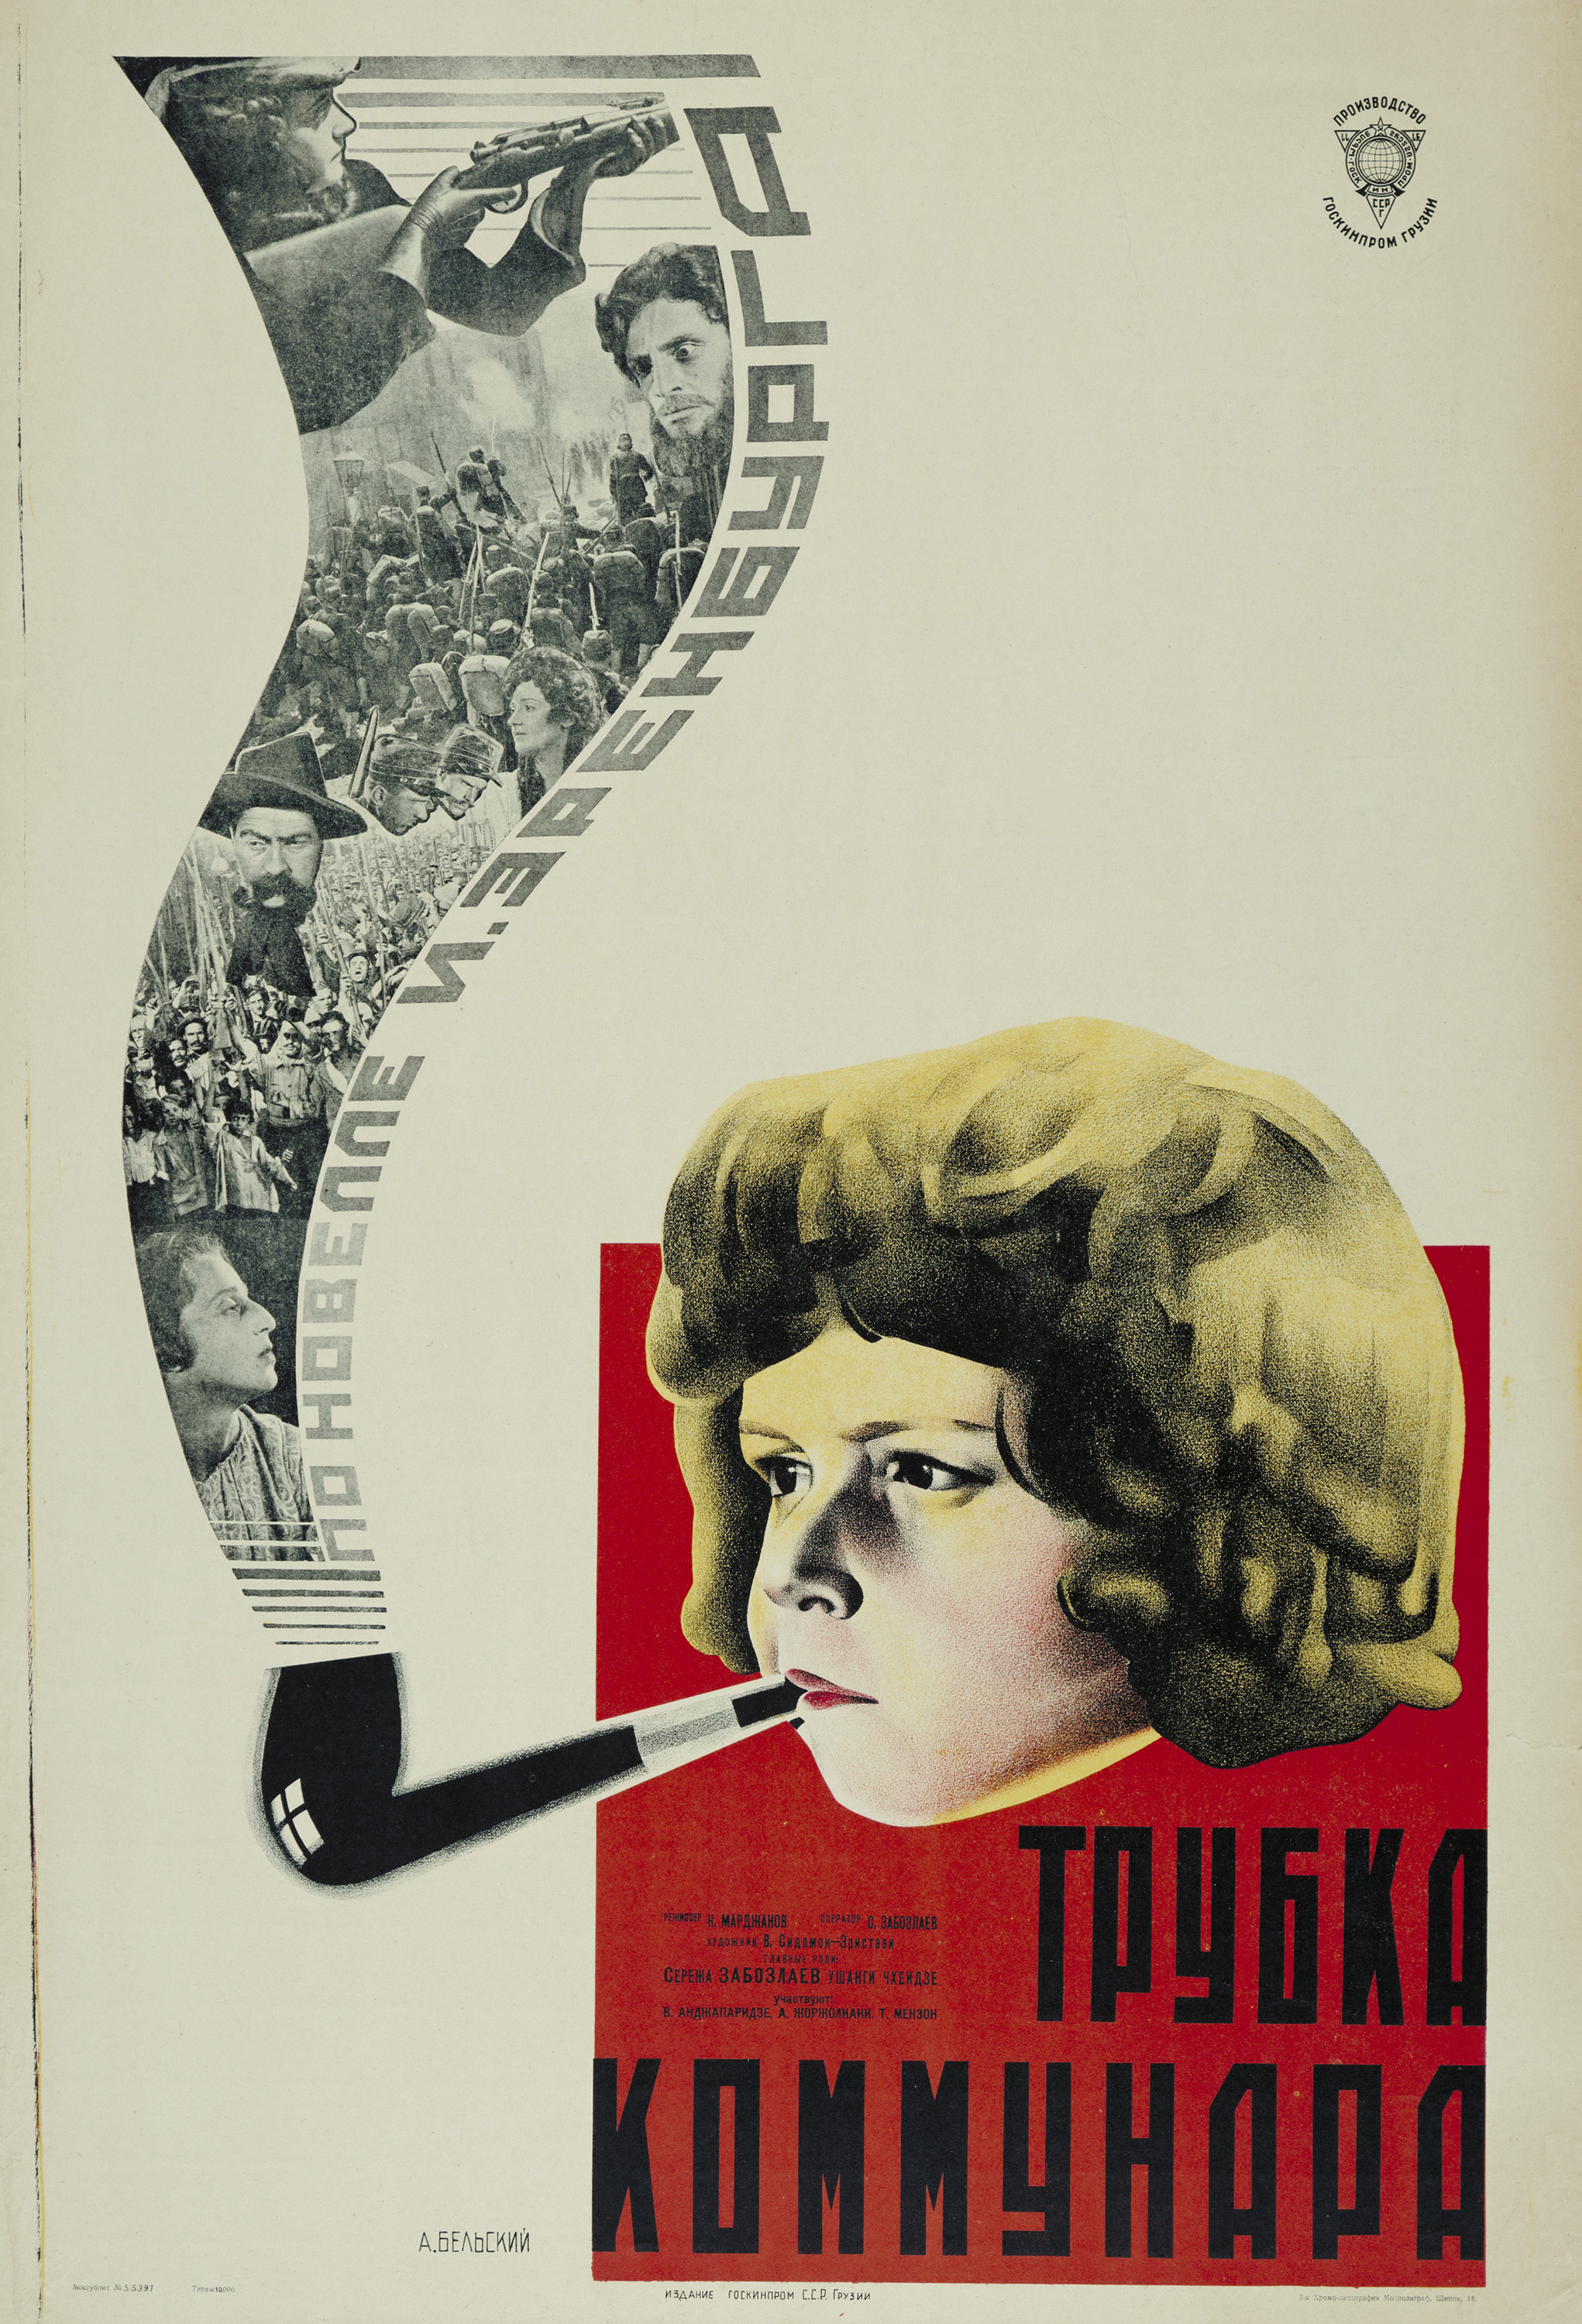 Anatoly Belsky. The poster for 'The Communard's Pipe,' directed by Konstantin Mardzhanov, 1929